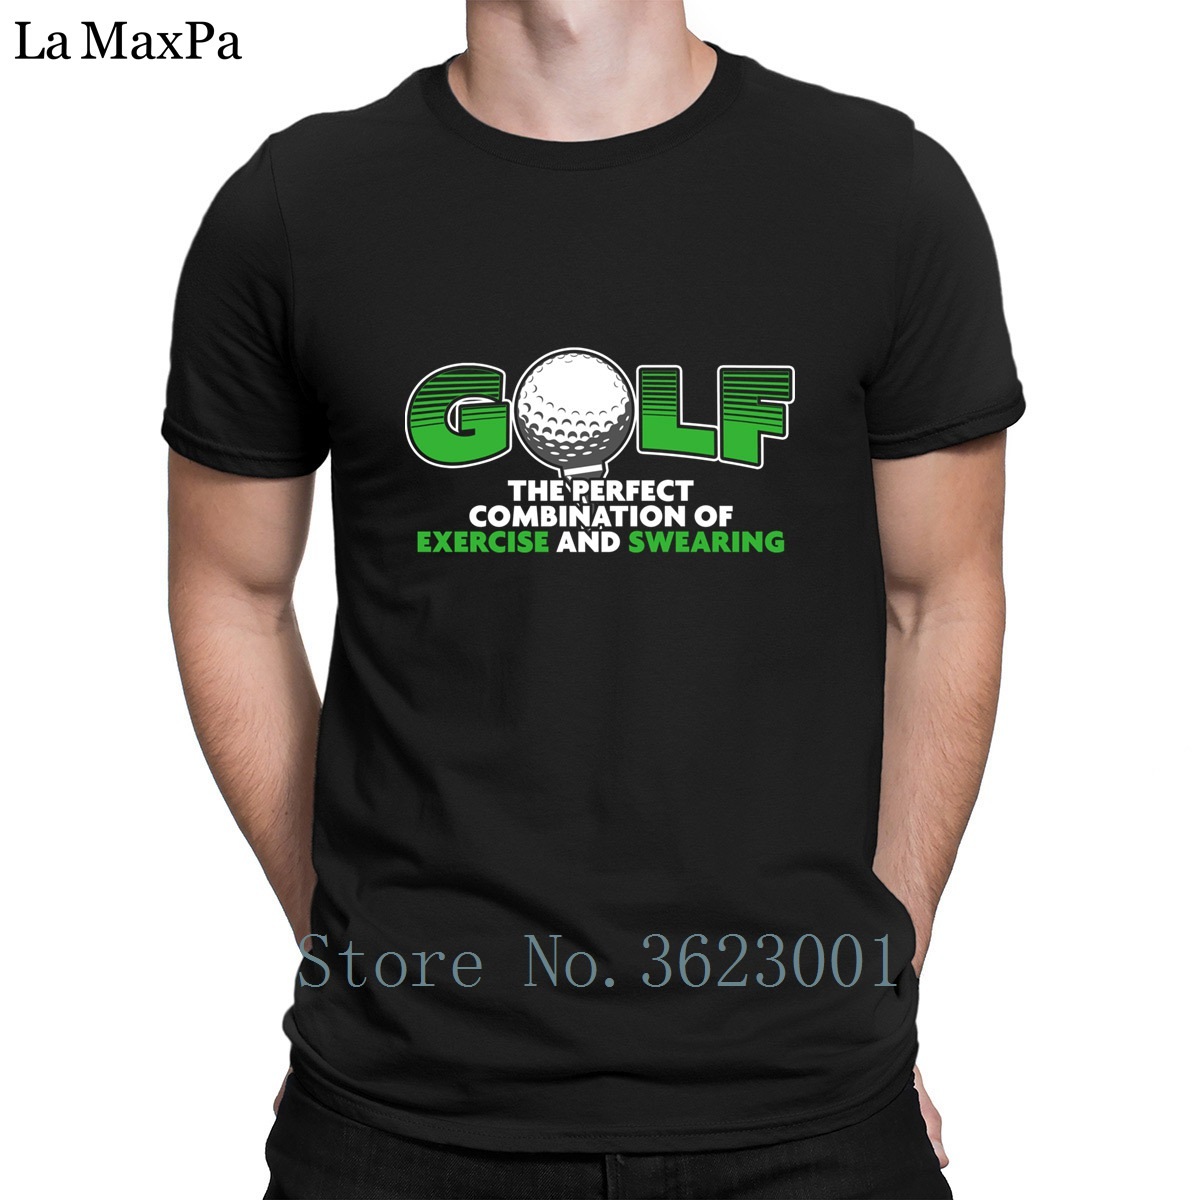 Design Nice T-Shirt Golfs The Perfect Combination Of Exercise And Swearing T Shirt For Men Costume Tshirt S-3xl Fitted Letter